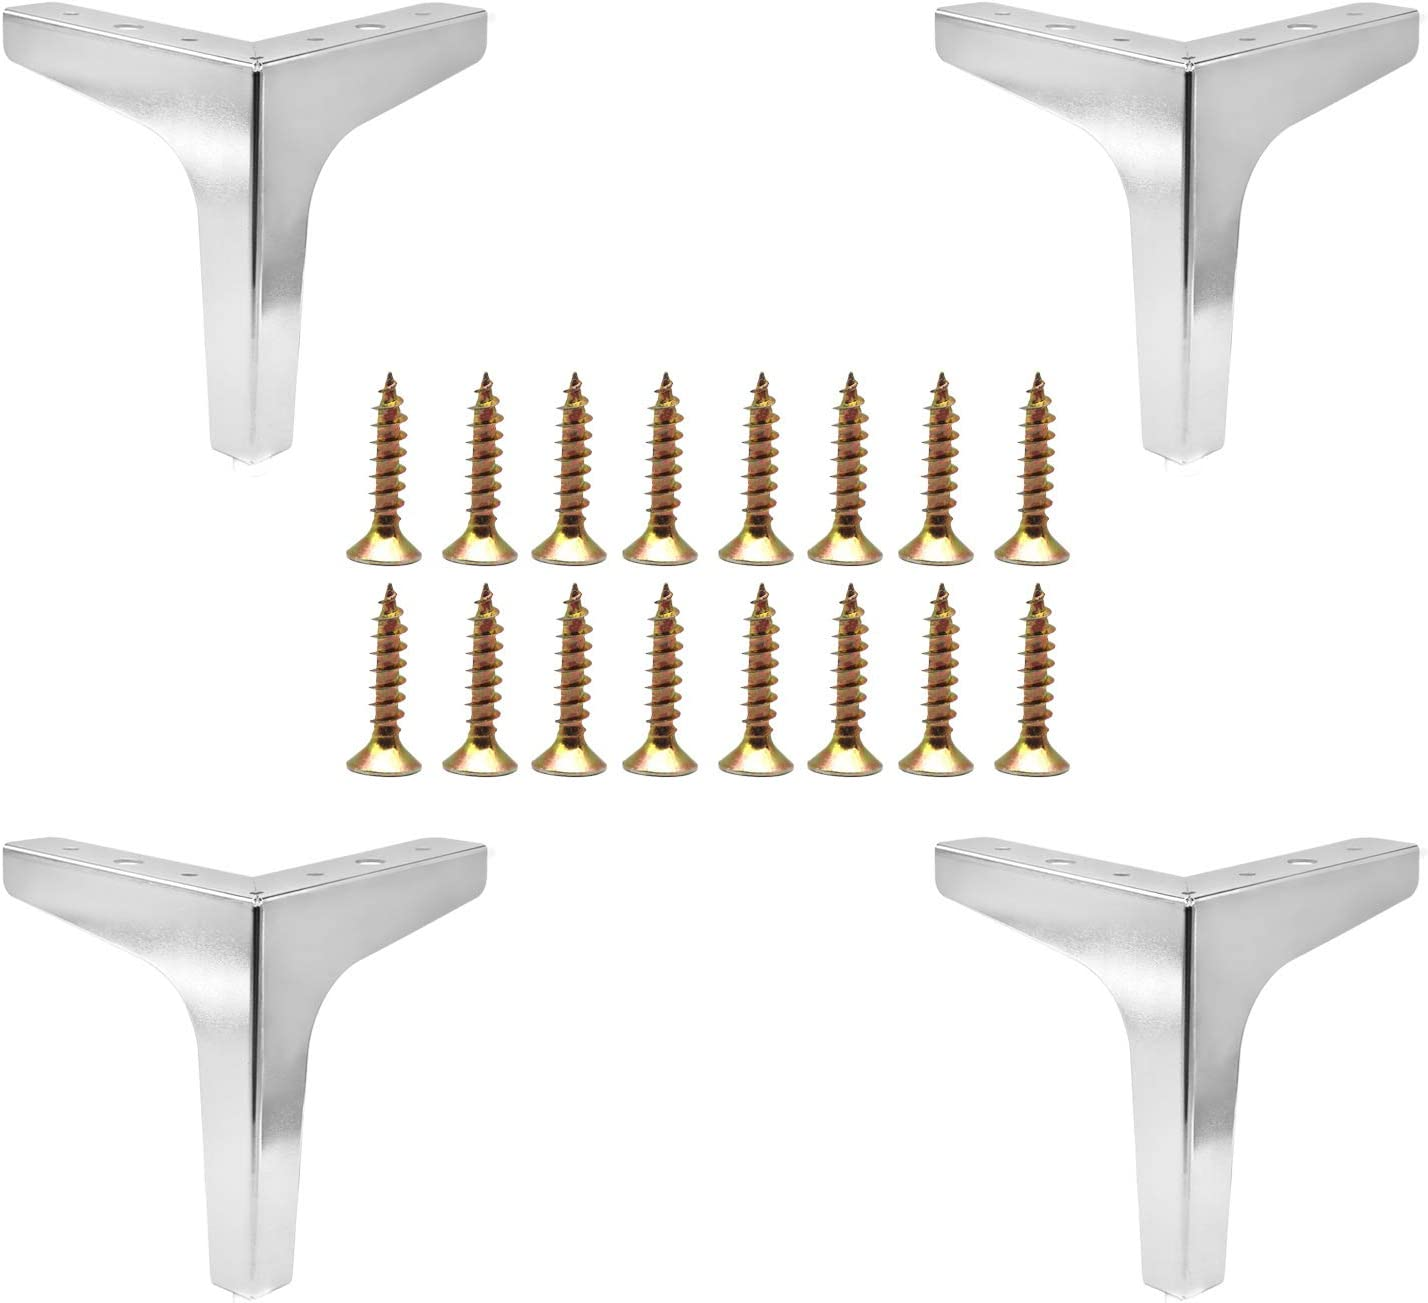 Pack of 4 Furniture Legs, 6 inch/ 15cm Height Sofa Legs Metal Chrome Polished Triangle Furniture Feet with Screws for Table Cabinet Cupboard Couch Bookcase Chair Ottoman DIY Replacement Parts